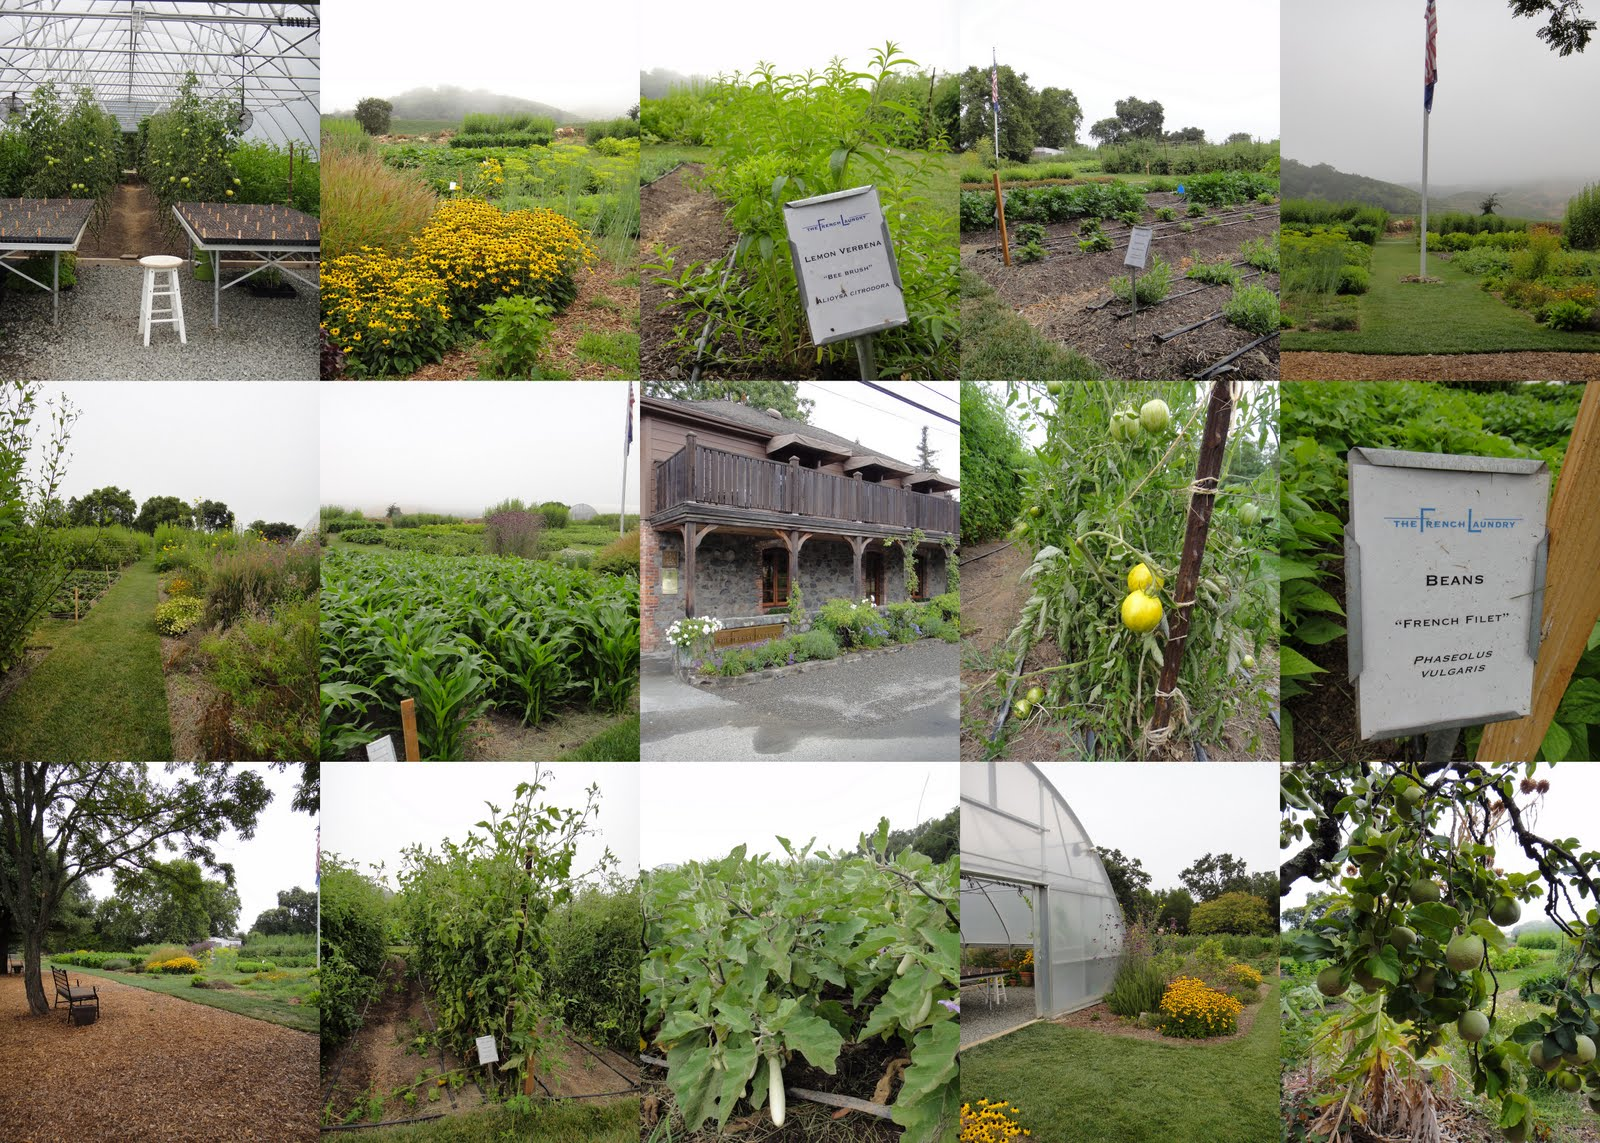 Country vegetable gardens - One Winery Garden We Didn T Make It To But I Want To On A Next Visit Is Quivira Located On West Dry Creek Road This Organic Winery Has A Large